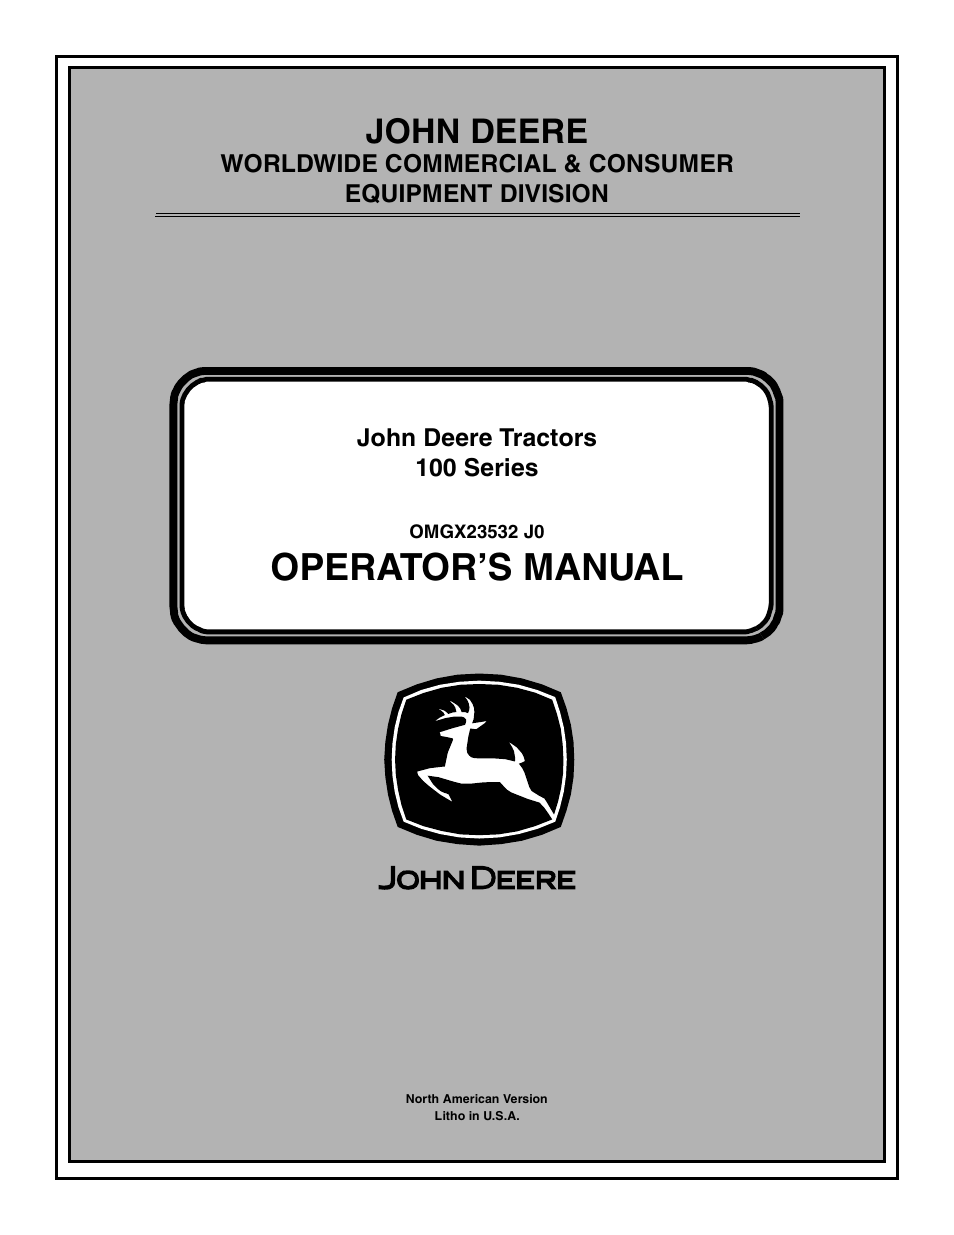 John Deere Tractor 100 Series Omg X23532 J0 User Manual 56 Pages. John Deere Tractor 100 Series Omg X23532 J0 User Manual 56 Pages Also For D100 D110 D120 D130 D140 D150 D160 D170. John Deere. 52 John Deere D110 Parts Diagram At Scoala.co